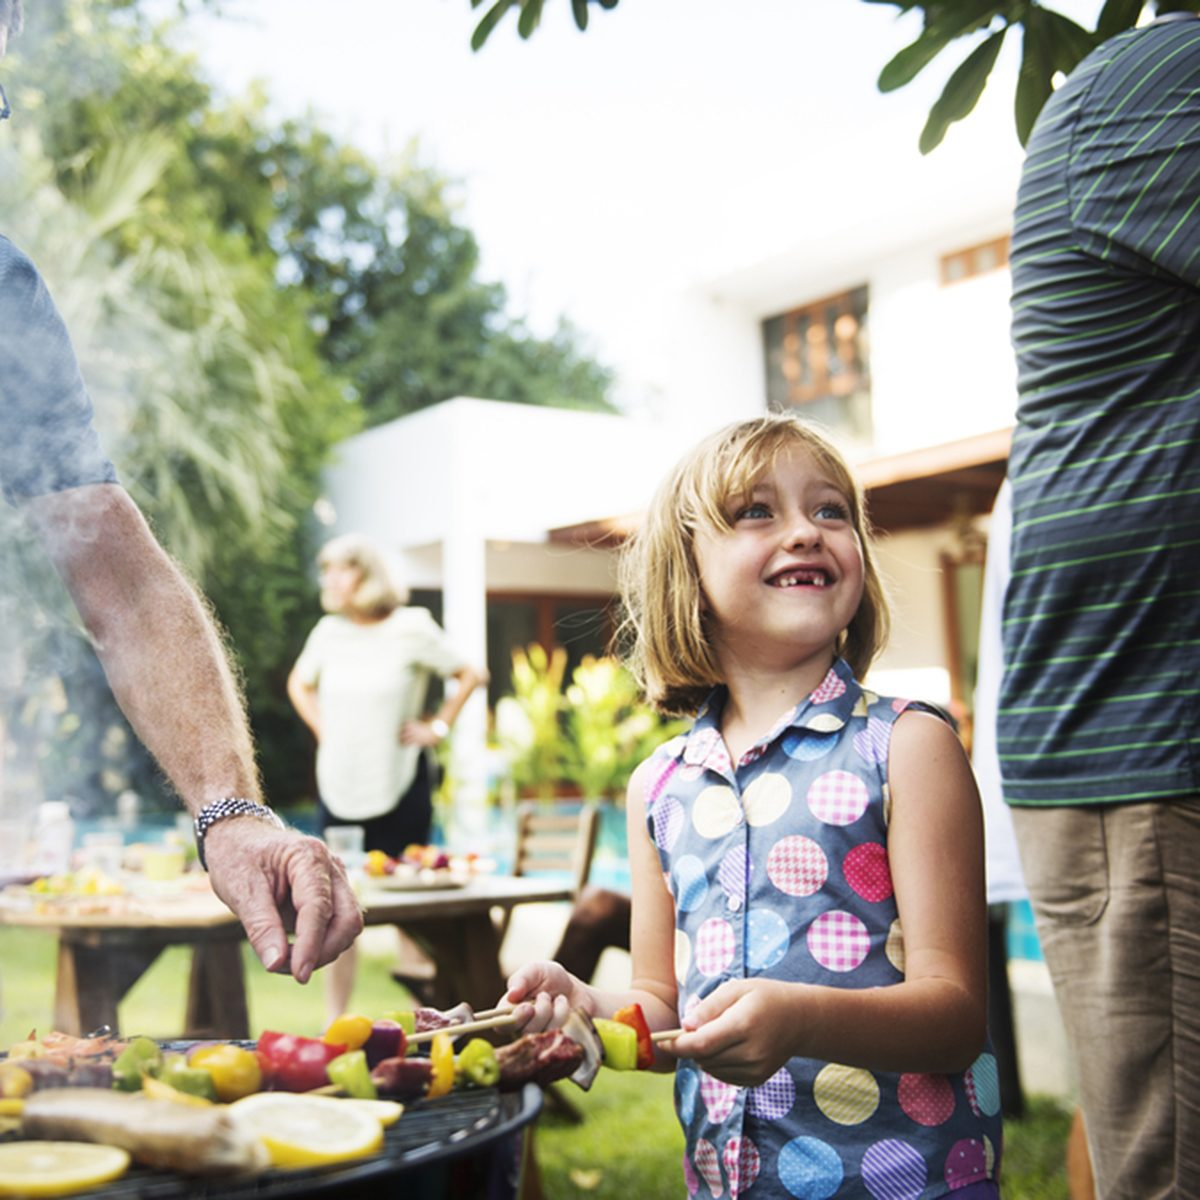 9 Things You Need for a Perfect Backyard Barbecue